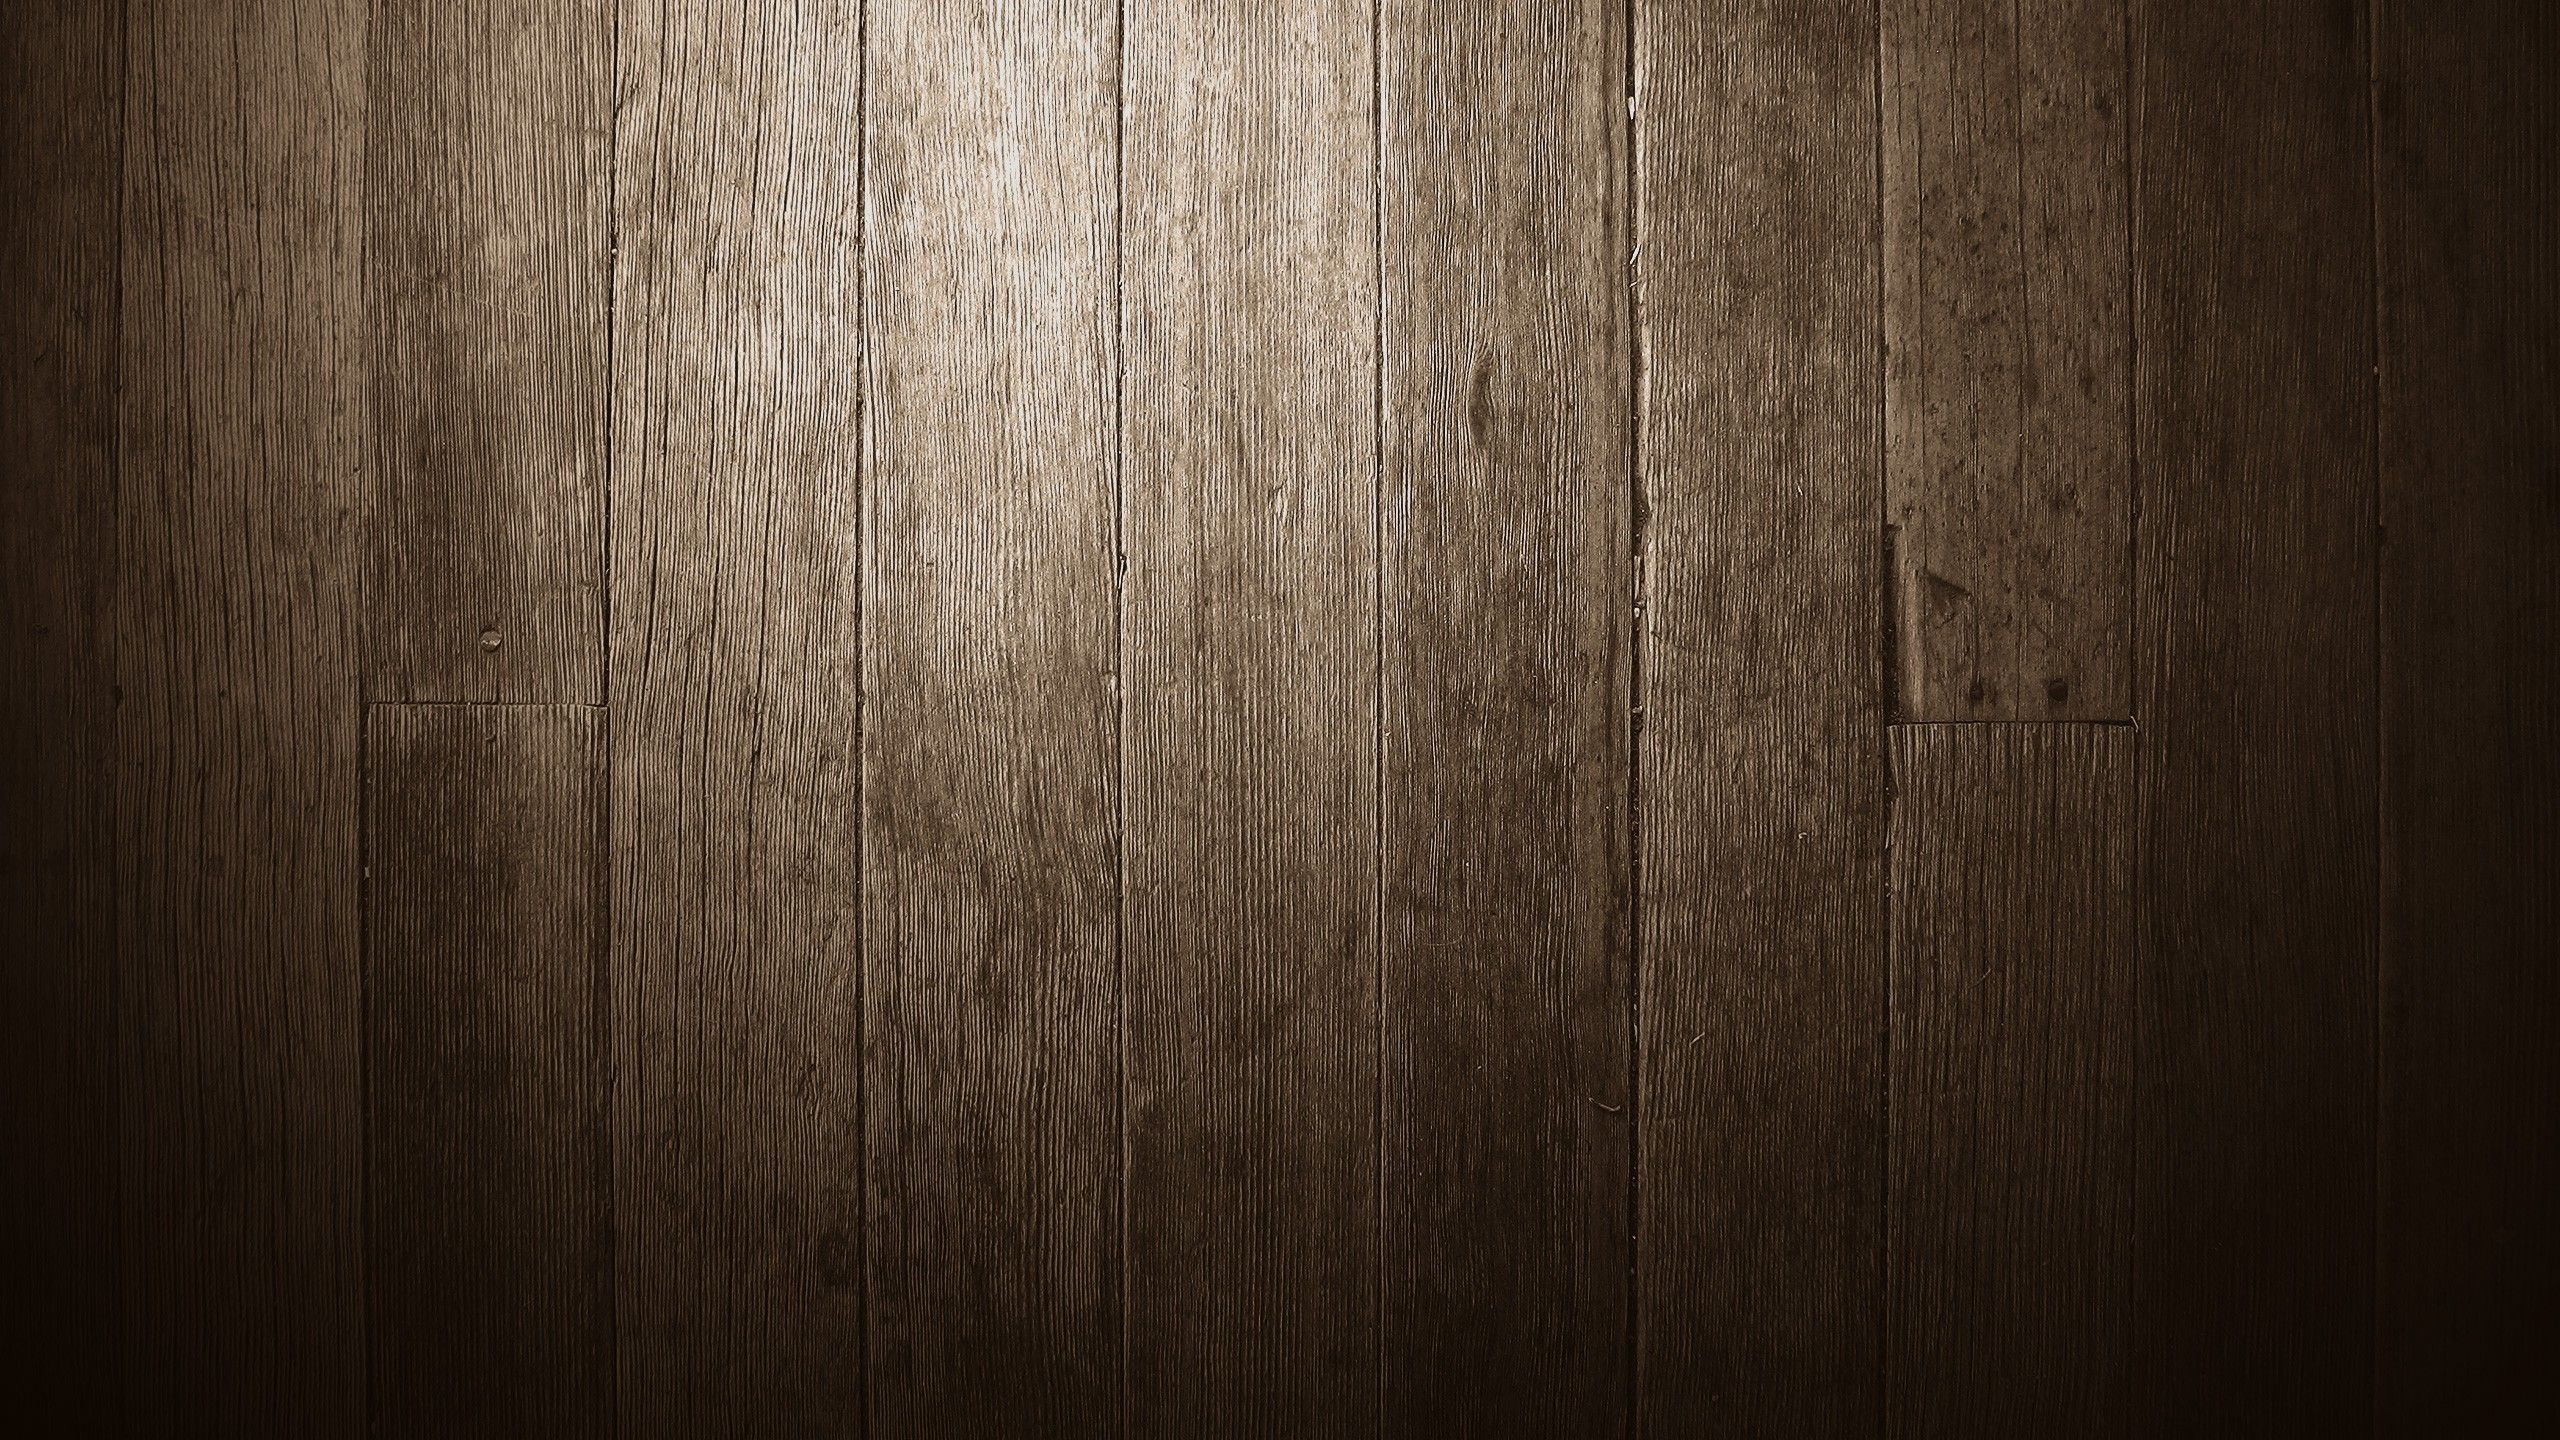 Wood table top texture - Hd Wallpapers Textures Wallpaper 2560 1440 Wood Textured Wallpapers 30 Wallpapers Adorable